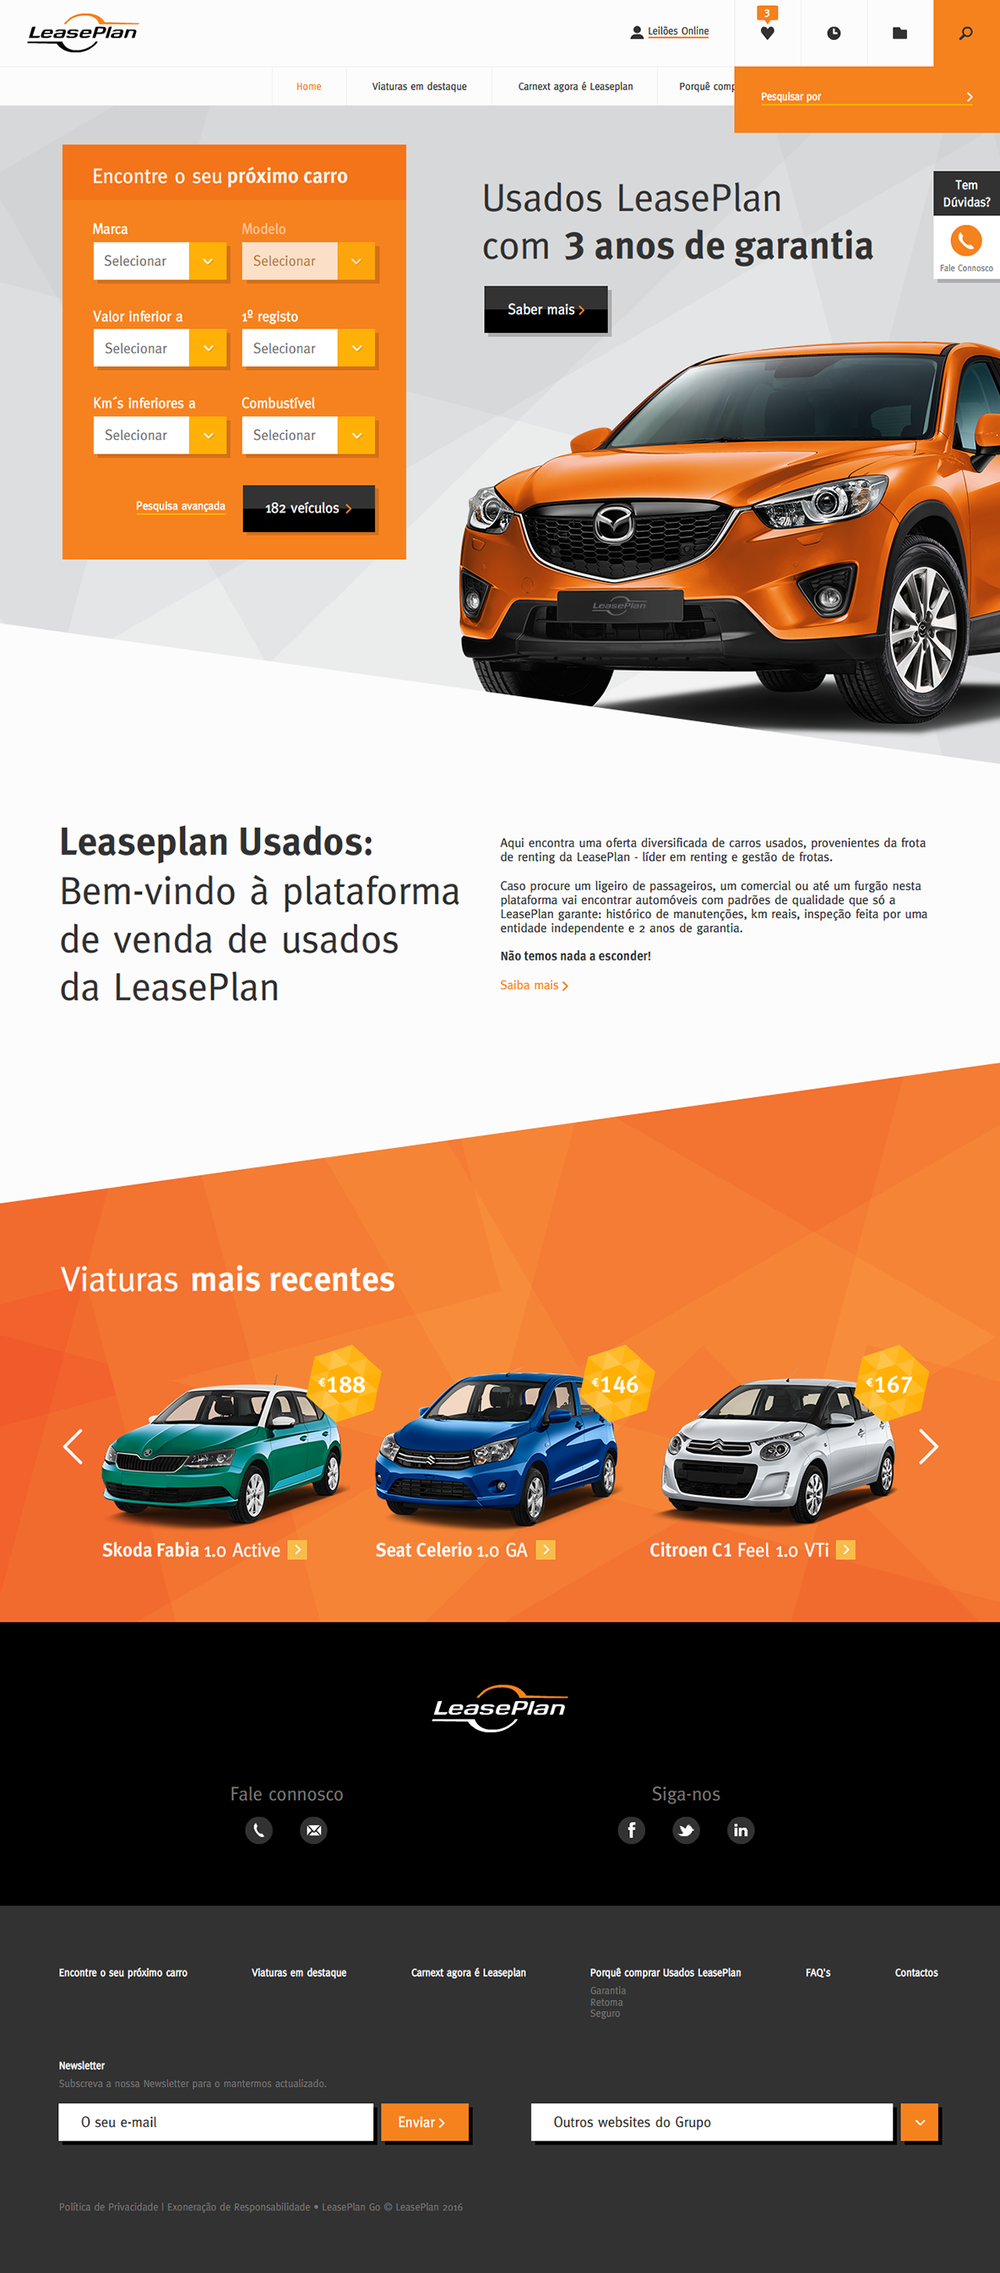 Leaseplan Used Cars Leaseplan Used Cars Website Luis Bacharel